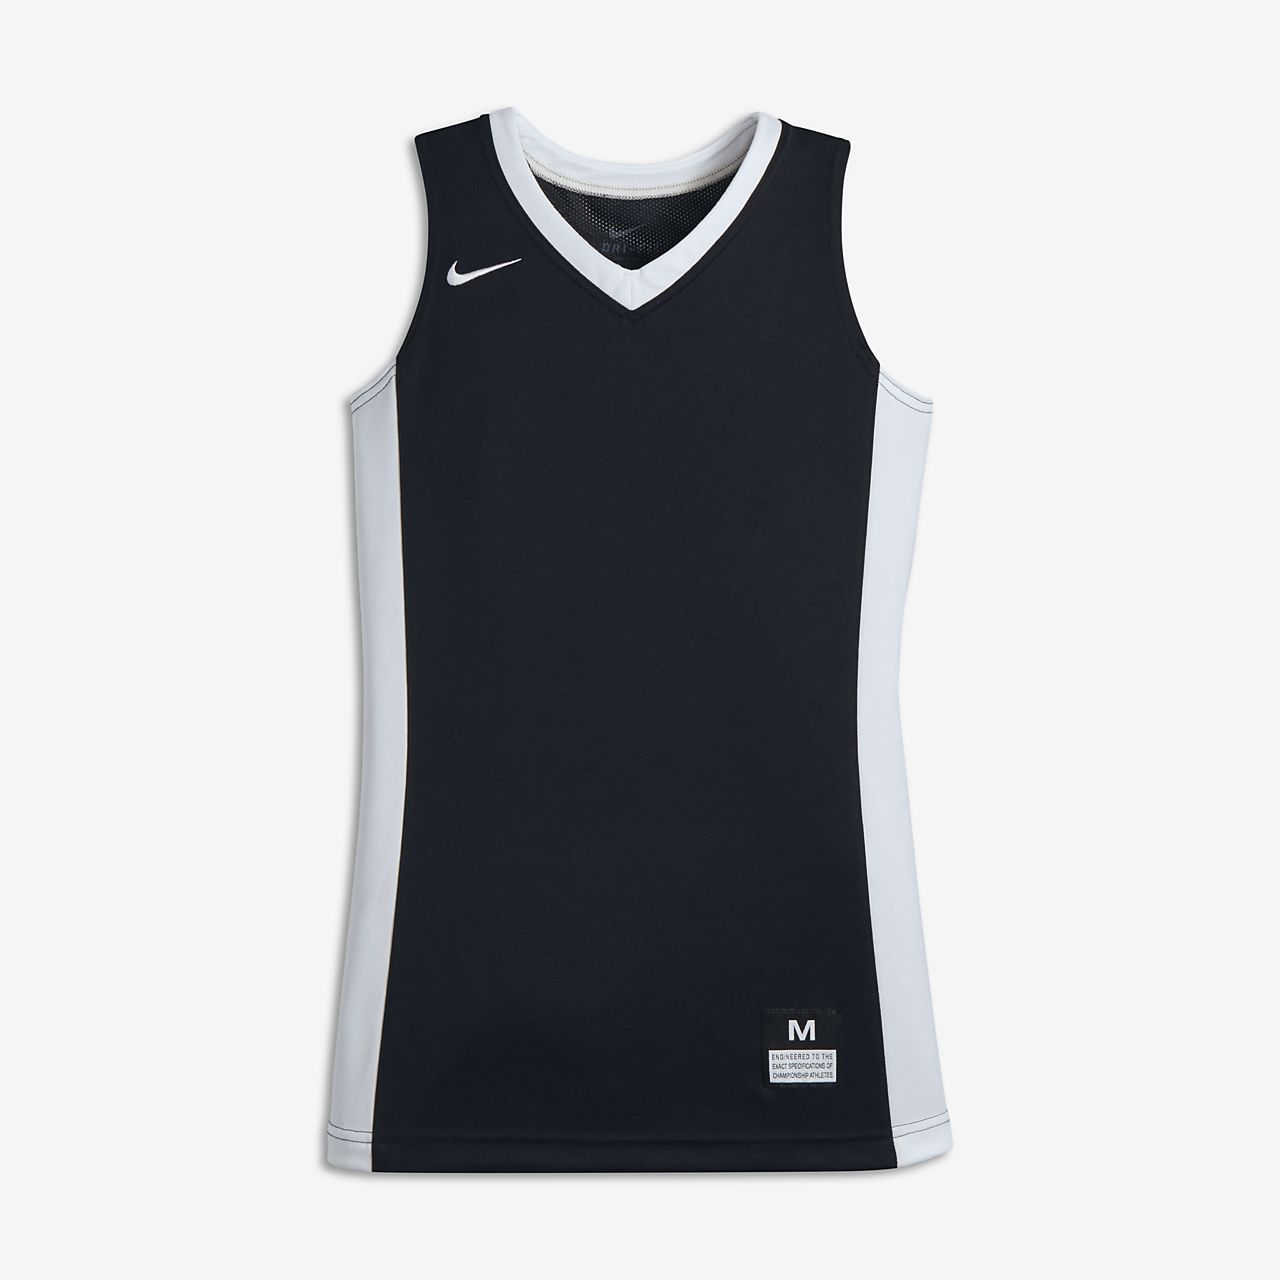 Nike Team Big Kids' Sleeveless Basketball Jersey Team Black/Team White